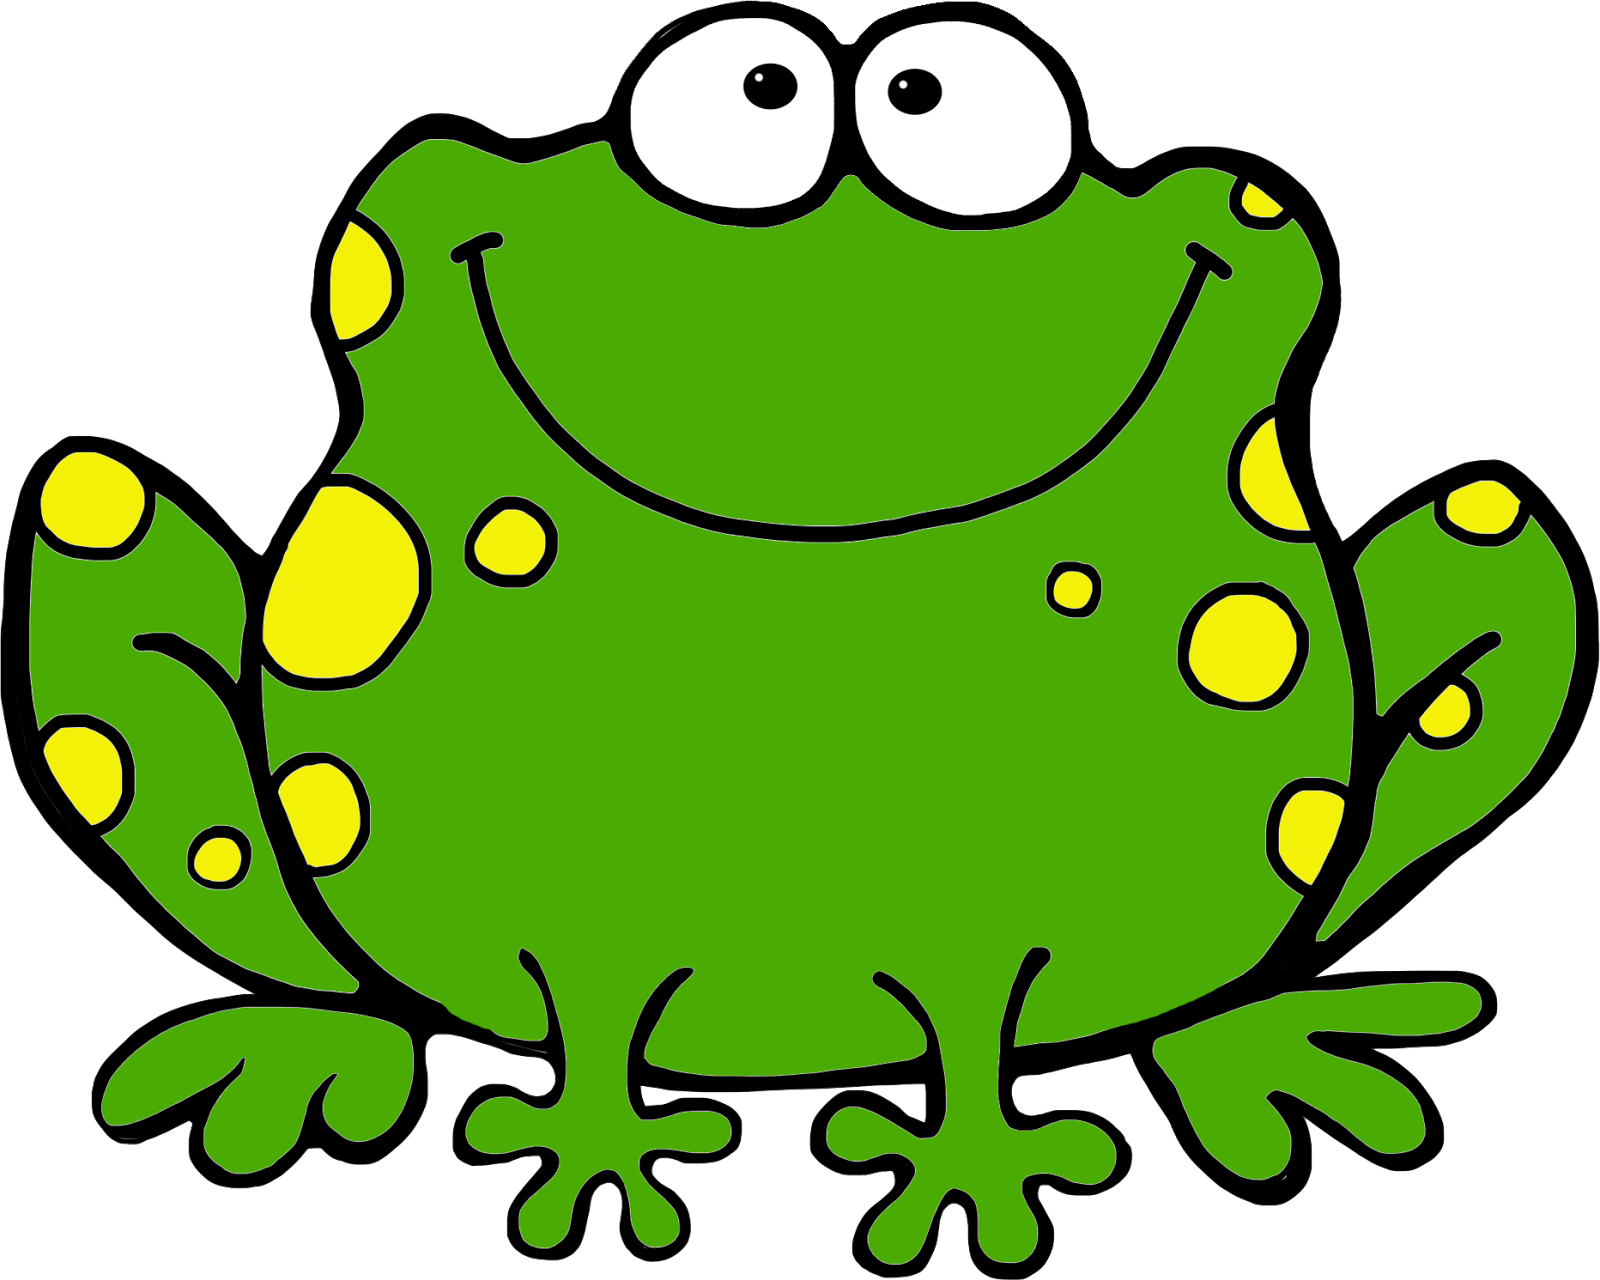 Free Frog Cliparts, Download Free Clip Art, Free Clip Art on.